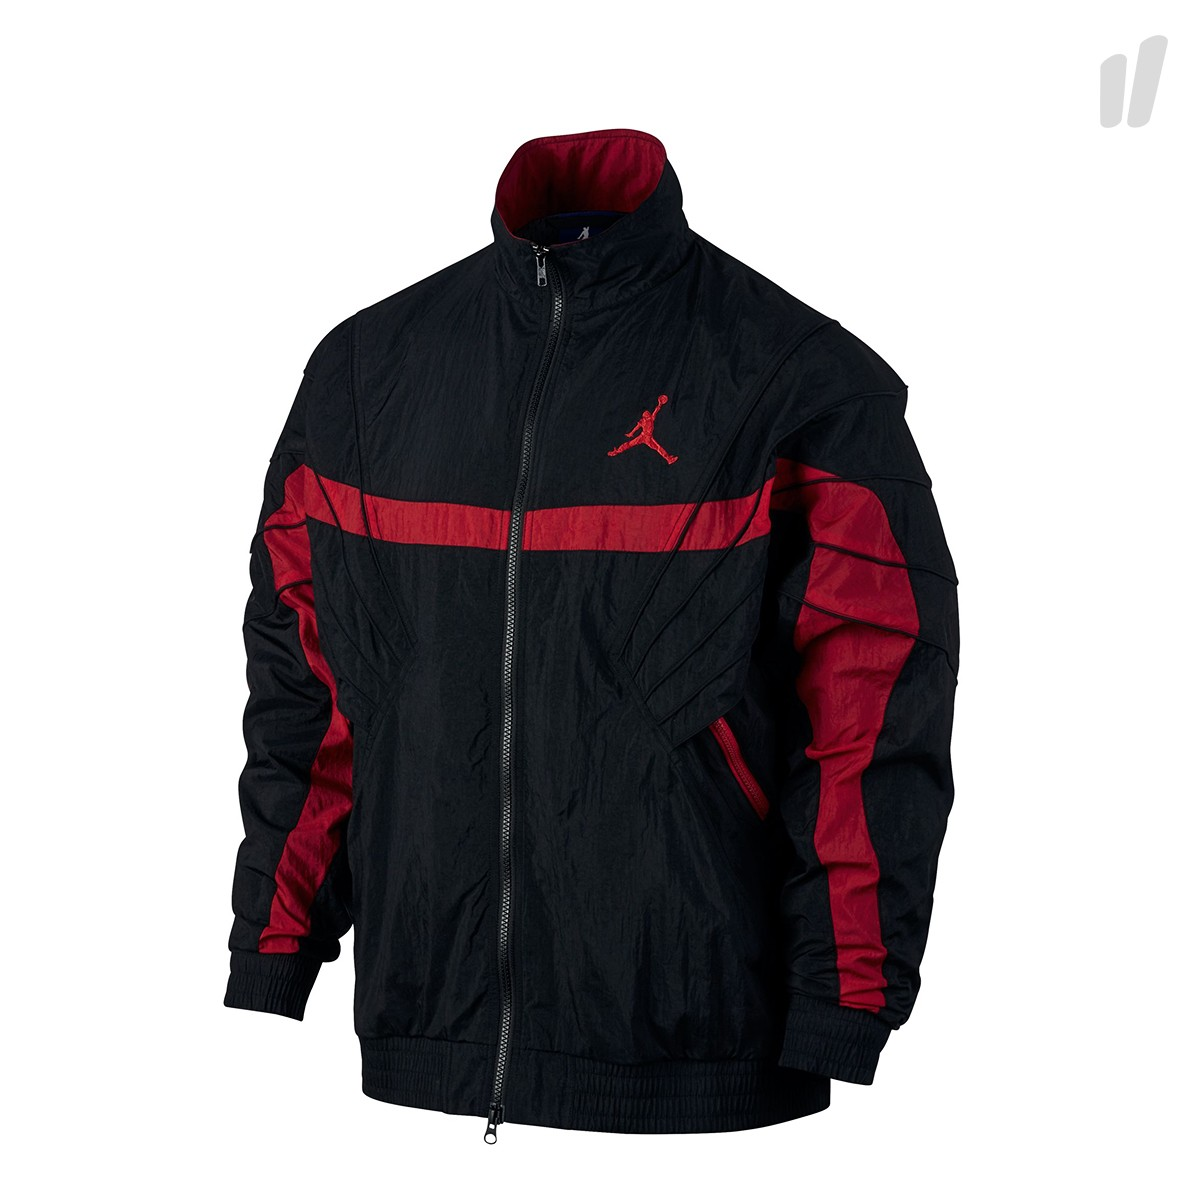 01594ac25901 If you d like to spruce up your wardrobe with the AJ 5 Vault jacket and pant